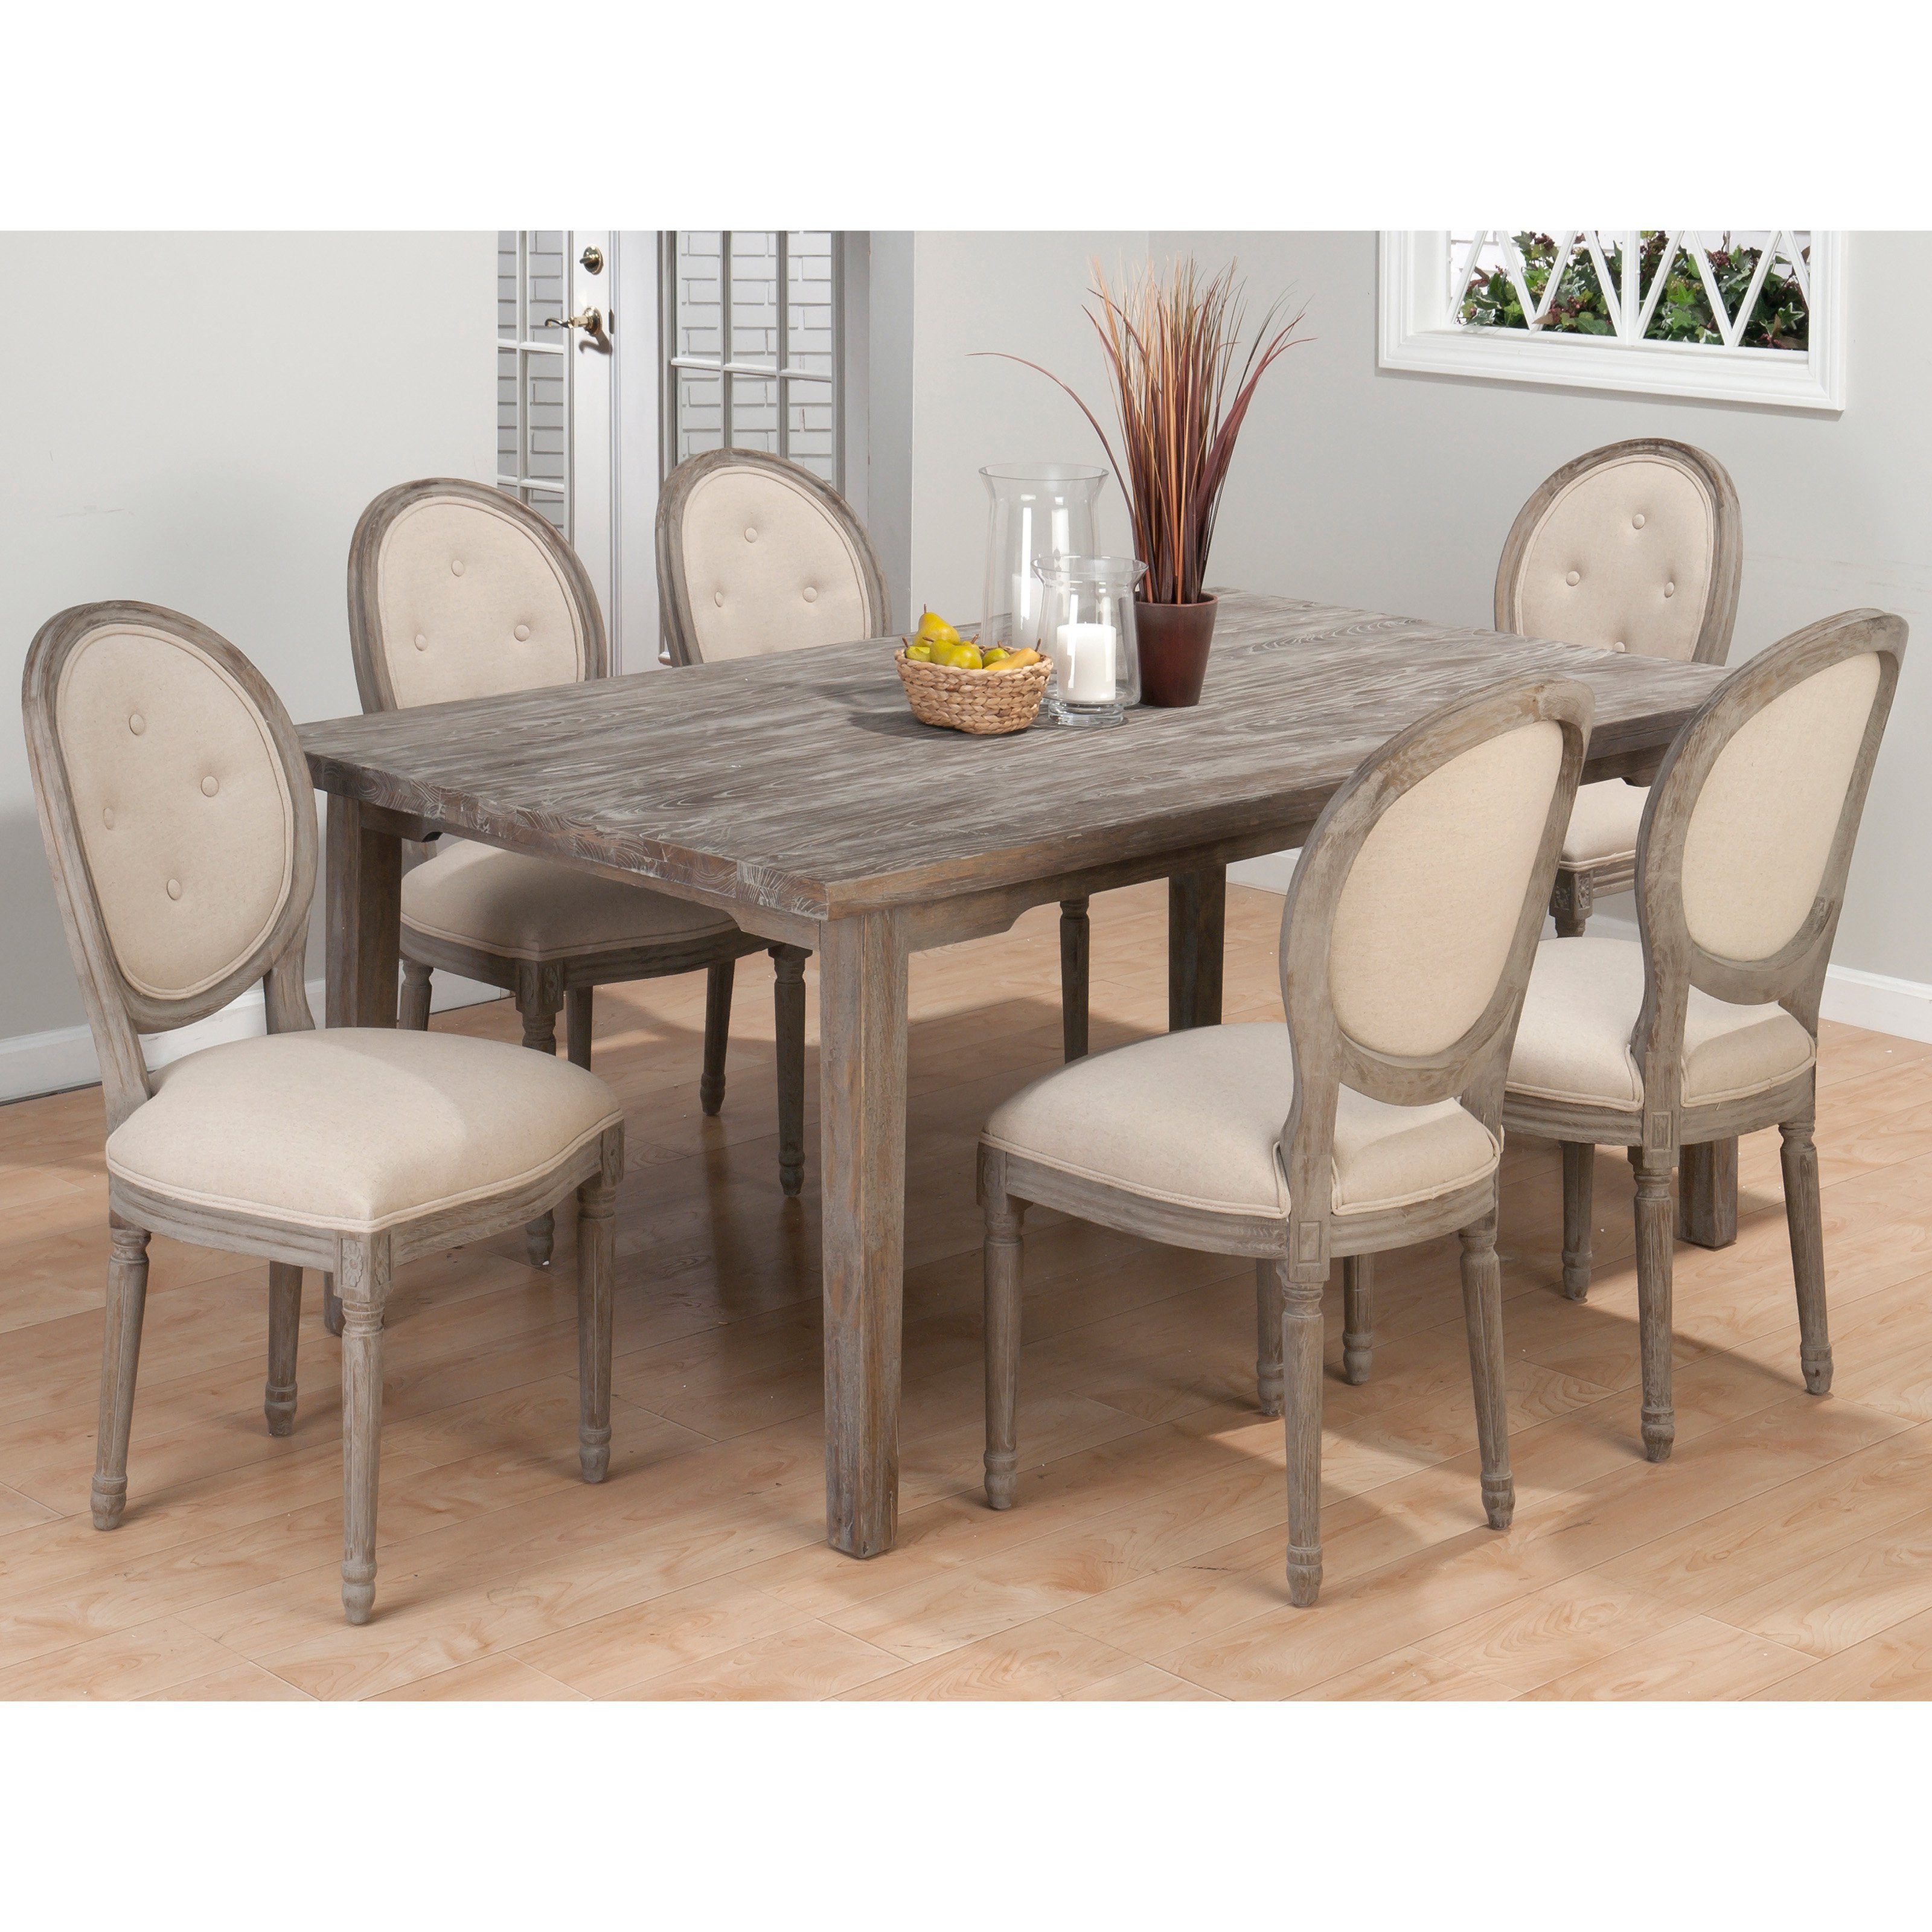 Best ideas about Booth Dining Table . Save or Pin Jofran Booth Bay Rectangular 5 Piece Dining Table Set with Now.